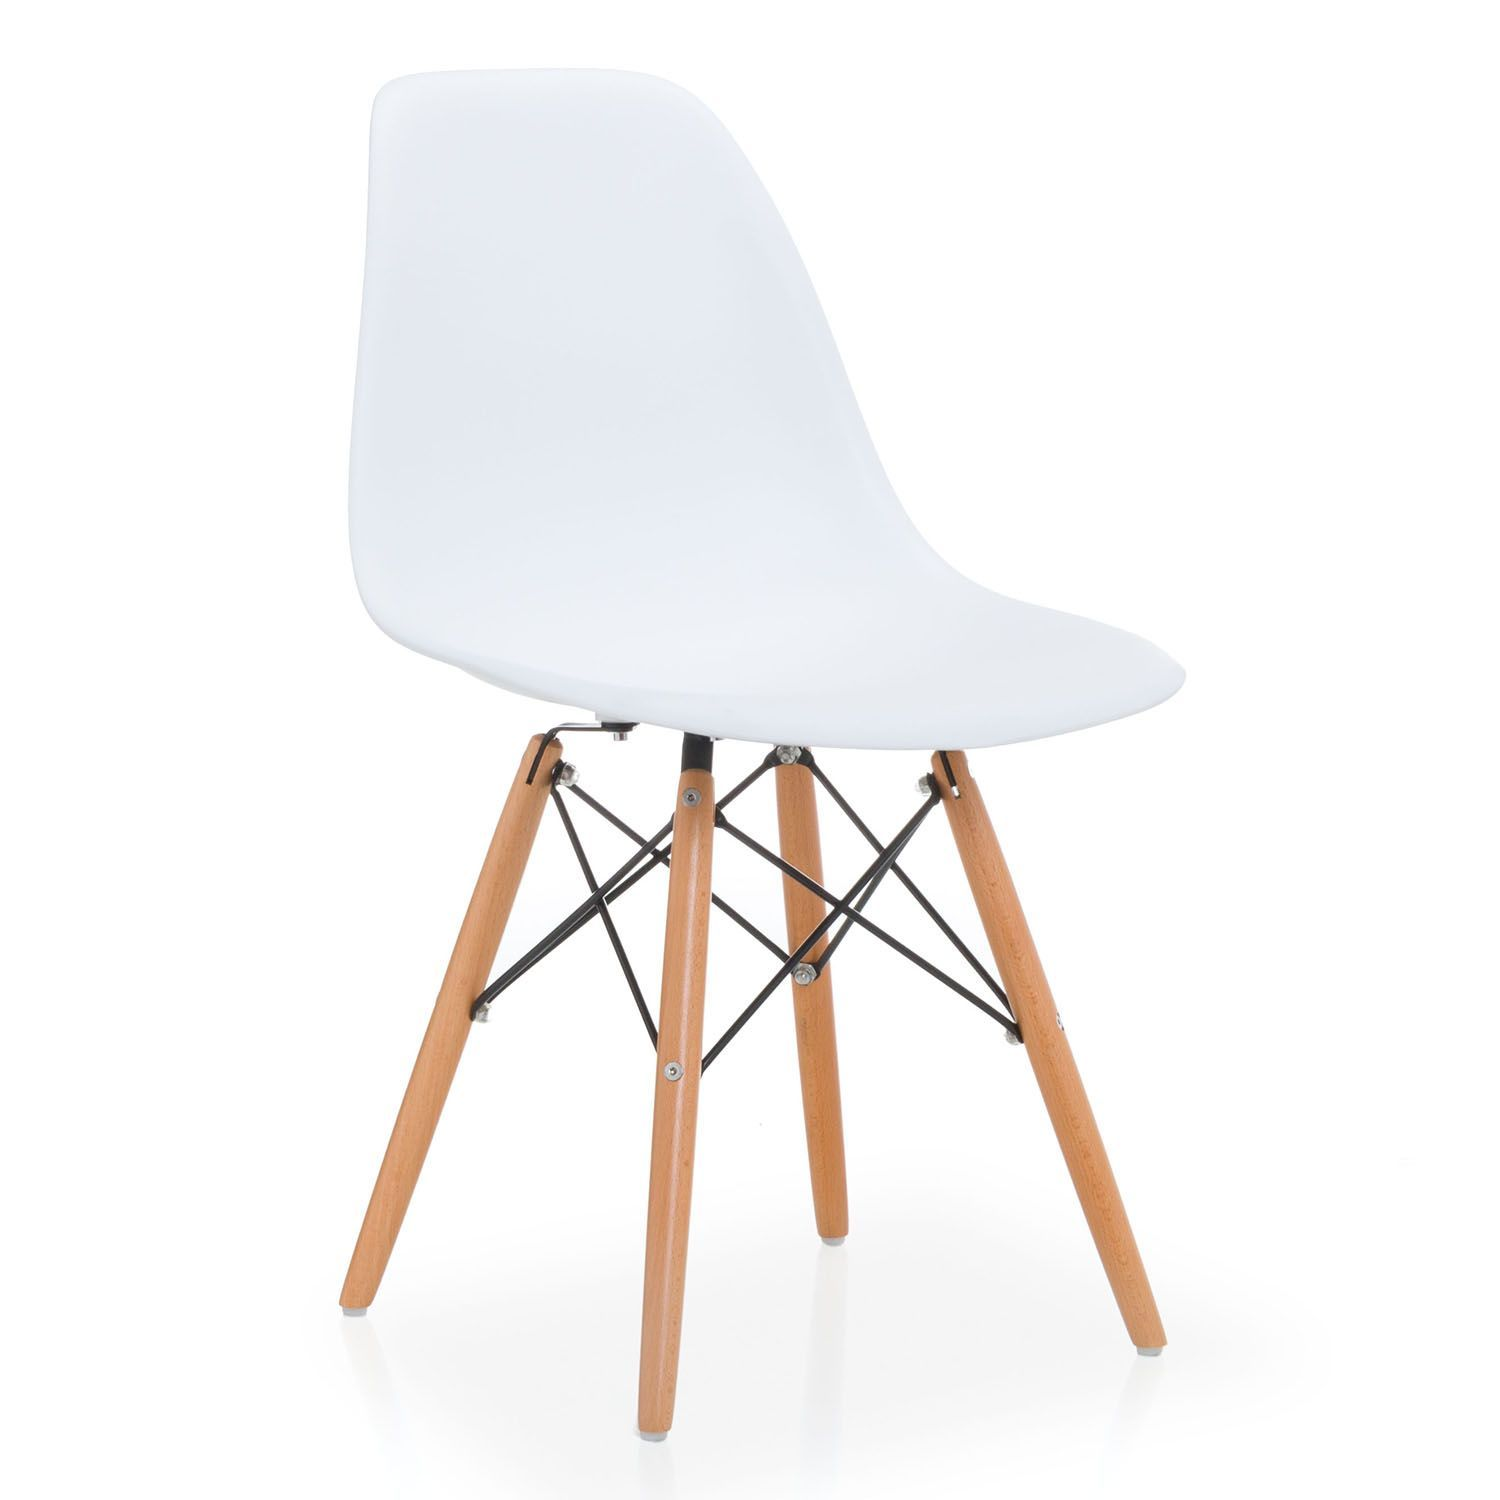 Wooden Chairs Are One Of The Most Por Models Avant Garde Design Last Century